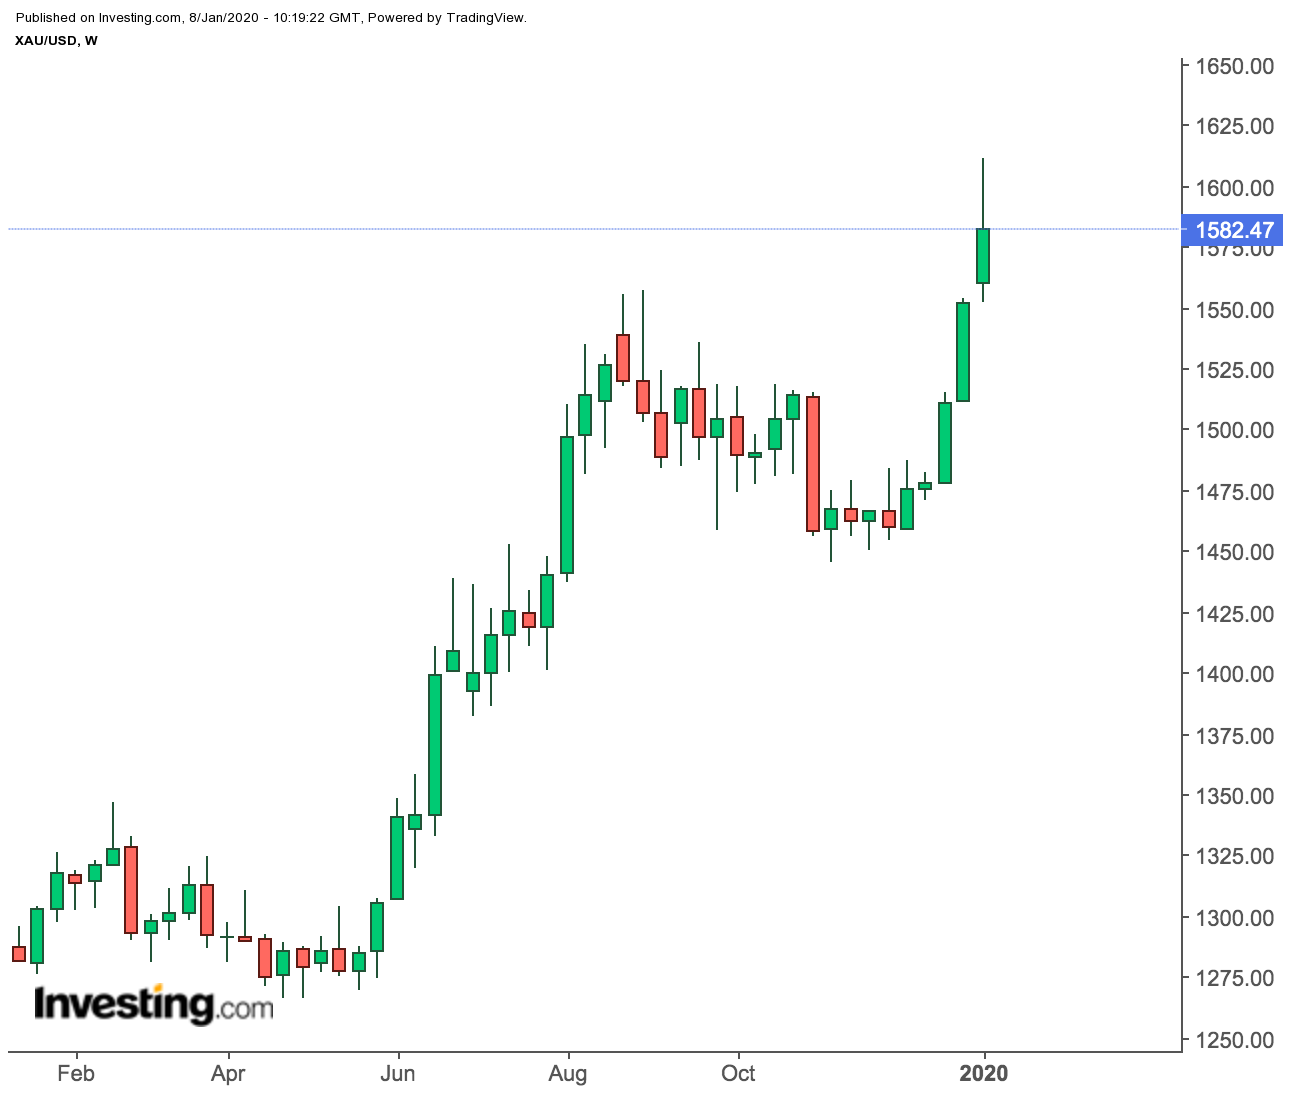 Gold Spot Weekly Prices